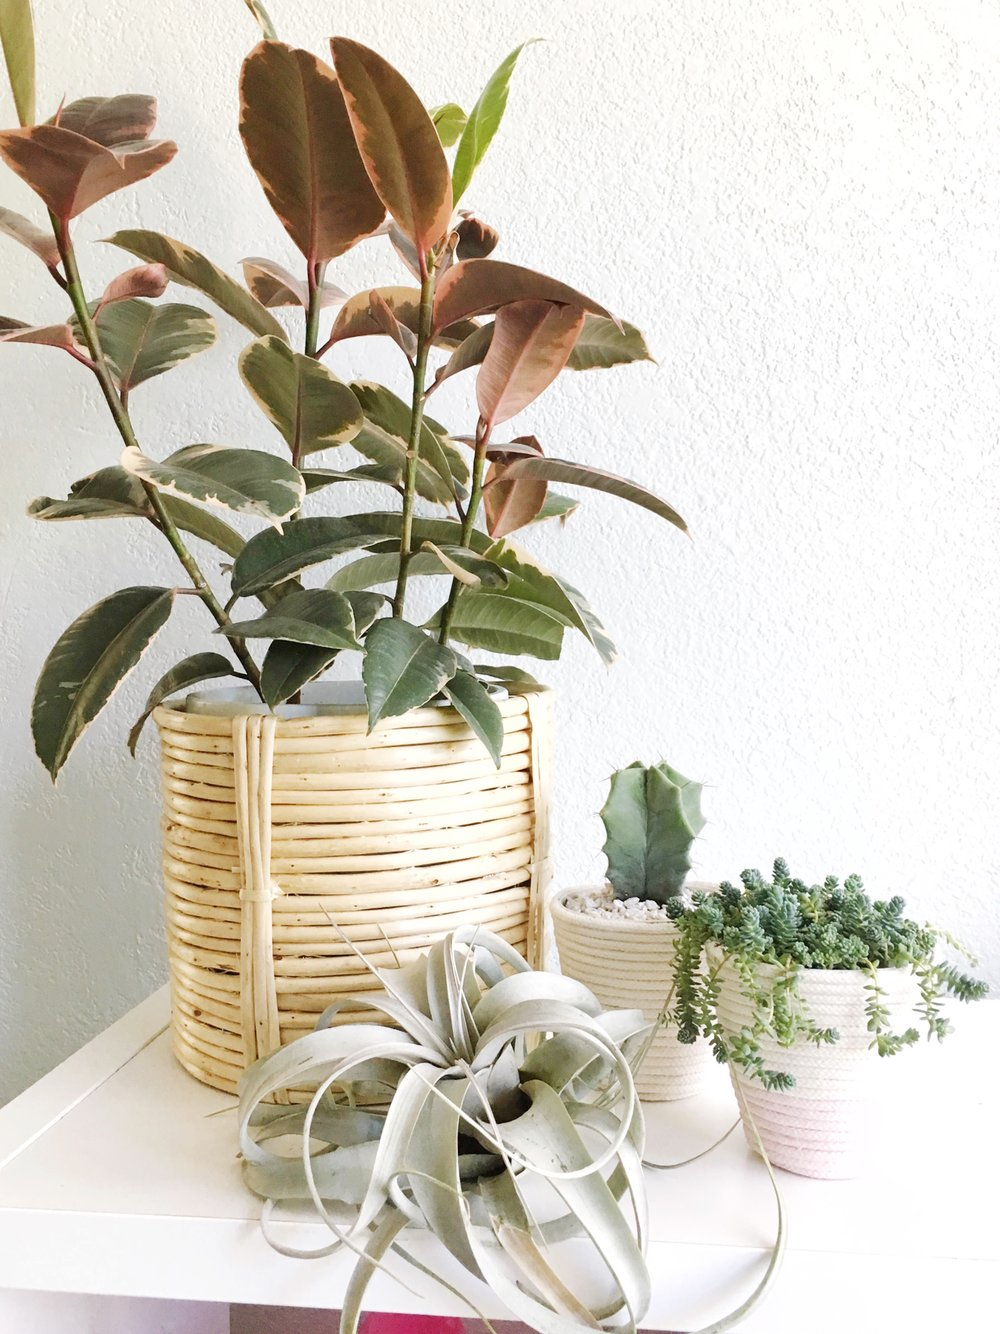 Learn how easy it is to make a rope planter simply with a cheap planter, cotton clothesline, and hot glue. Add a soft look to your new plants with this simple tutorial from Hey Love Designs.